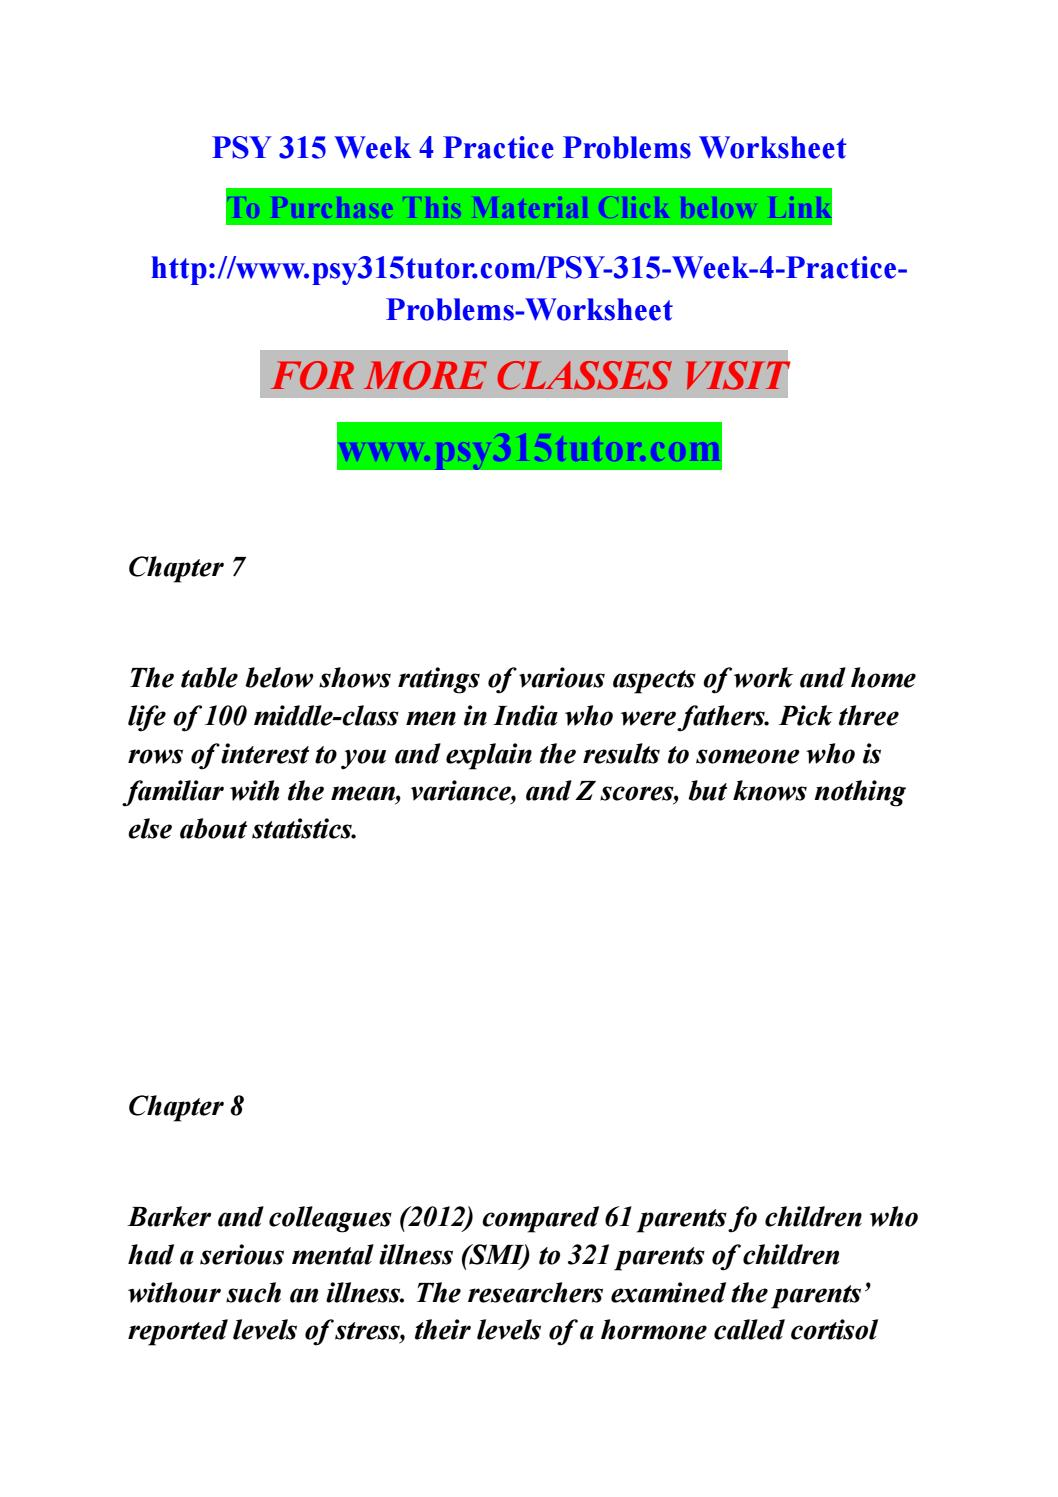 psy 315 week 4 practice problems worksheet by rohitamsh2 issuu. Black Bedroom Furniture Sets. Home Design Ideas